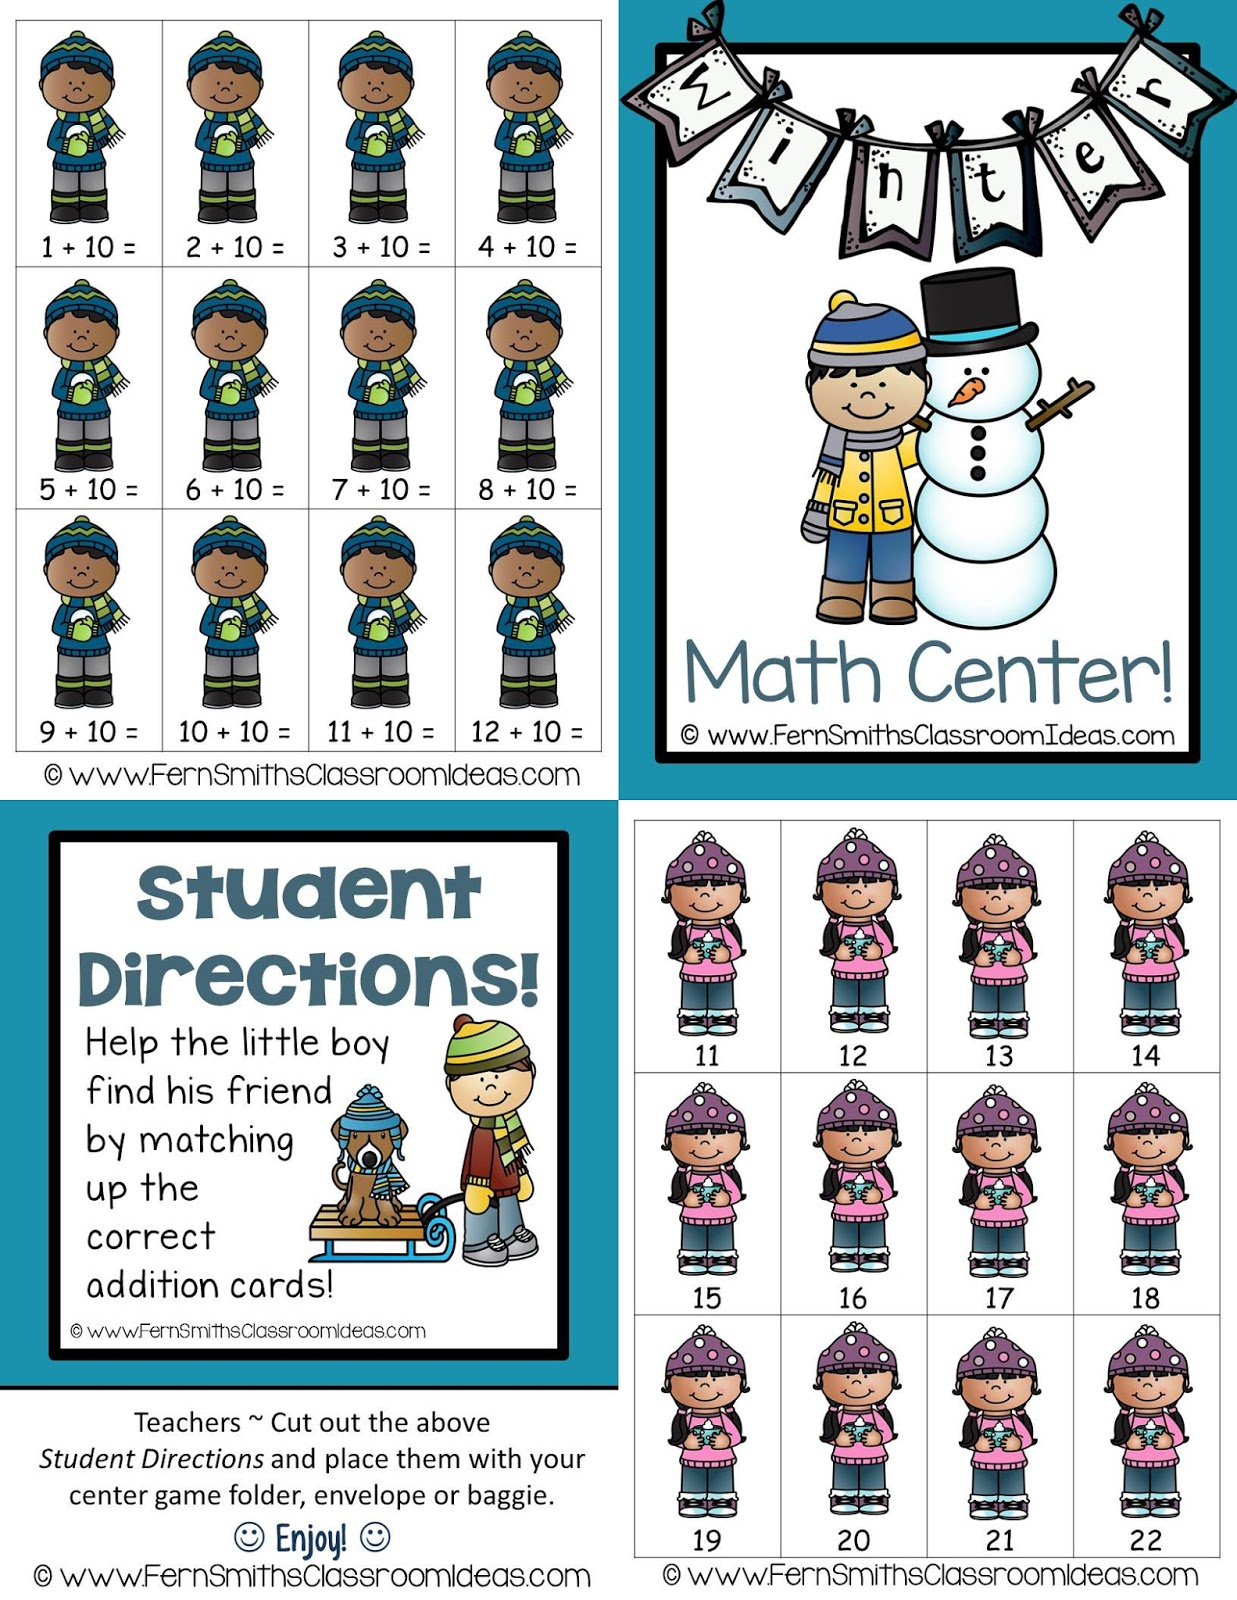 Fern Smith's Classroom Ideas FREE Quick and Easy to Prep Mixed Addition Plus Ten Concept Center Game with a Cute Winter Theme at TeachersPayTeachers.